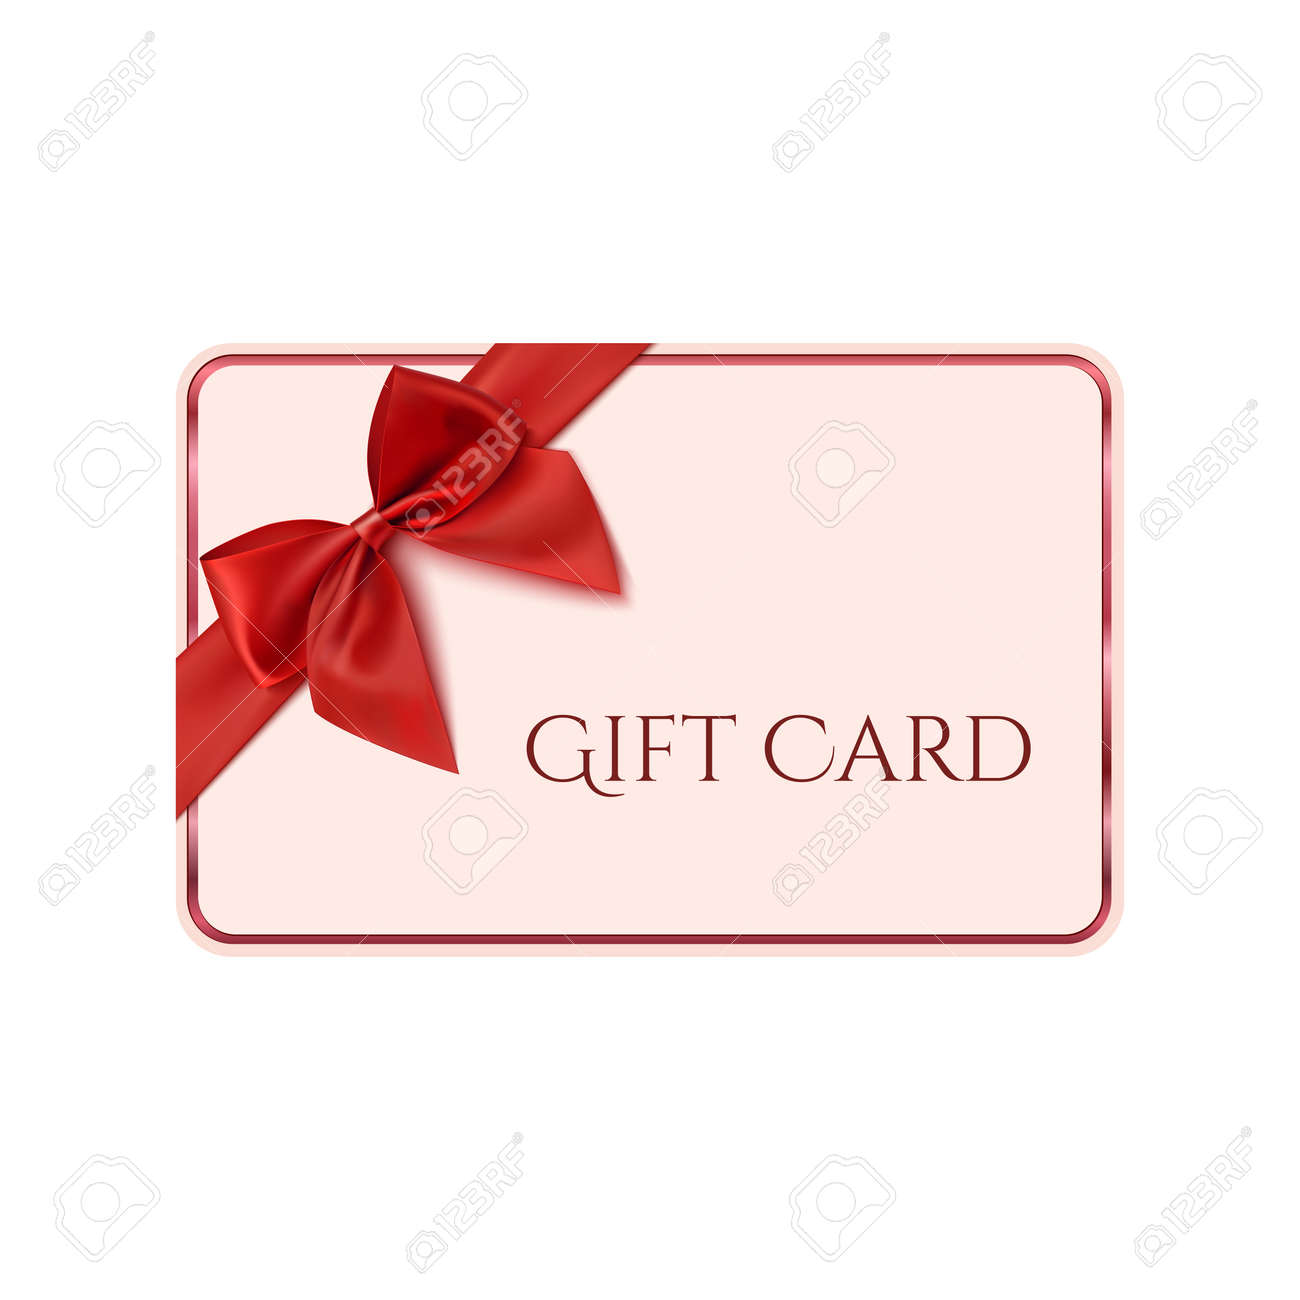 gift card template red ribbon and a bow vector illustration gift card template red ribbon and a bow vector illustration stock vector 35947425